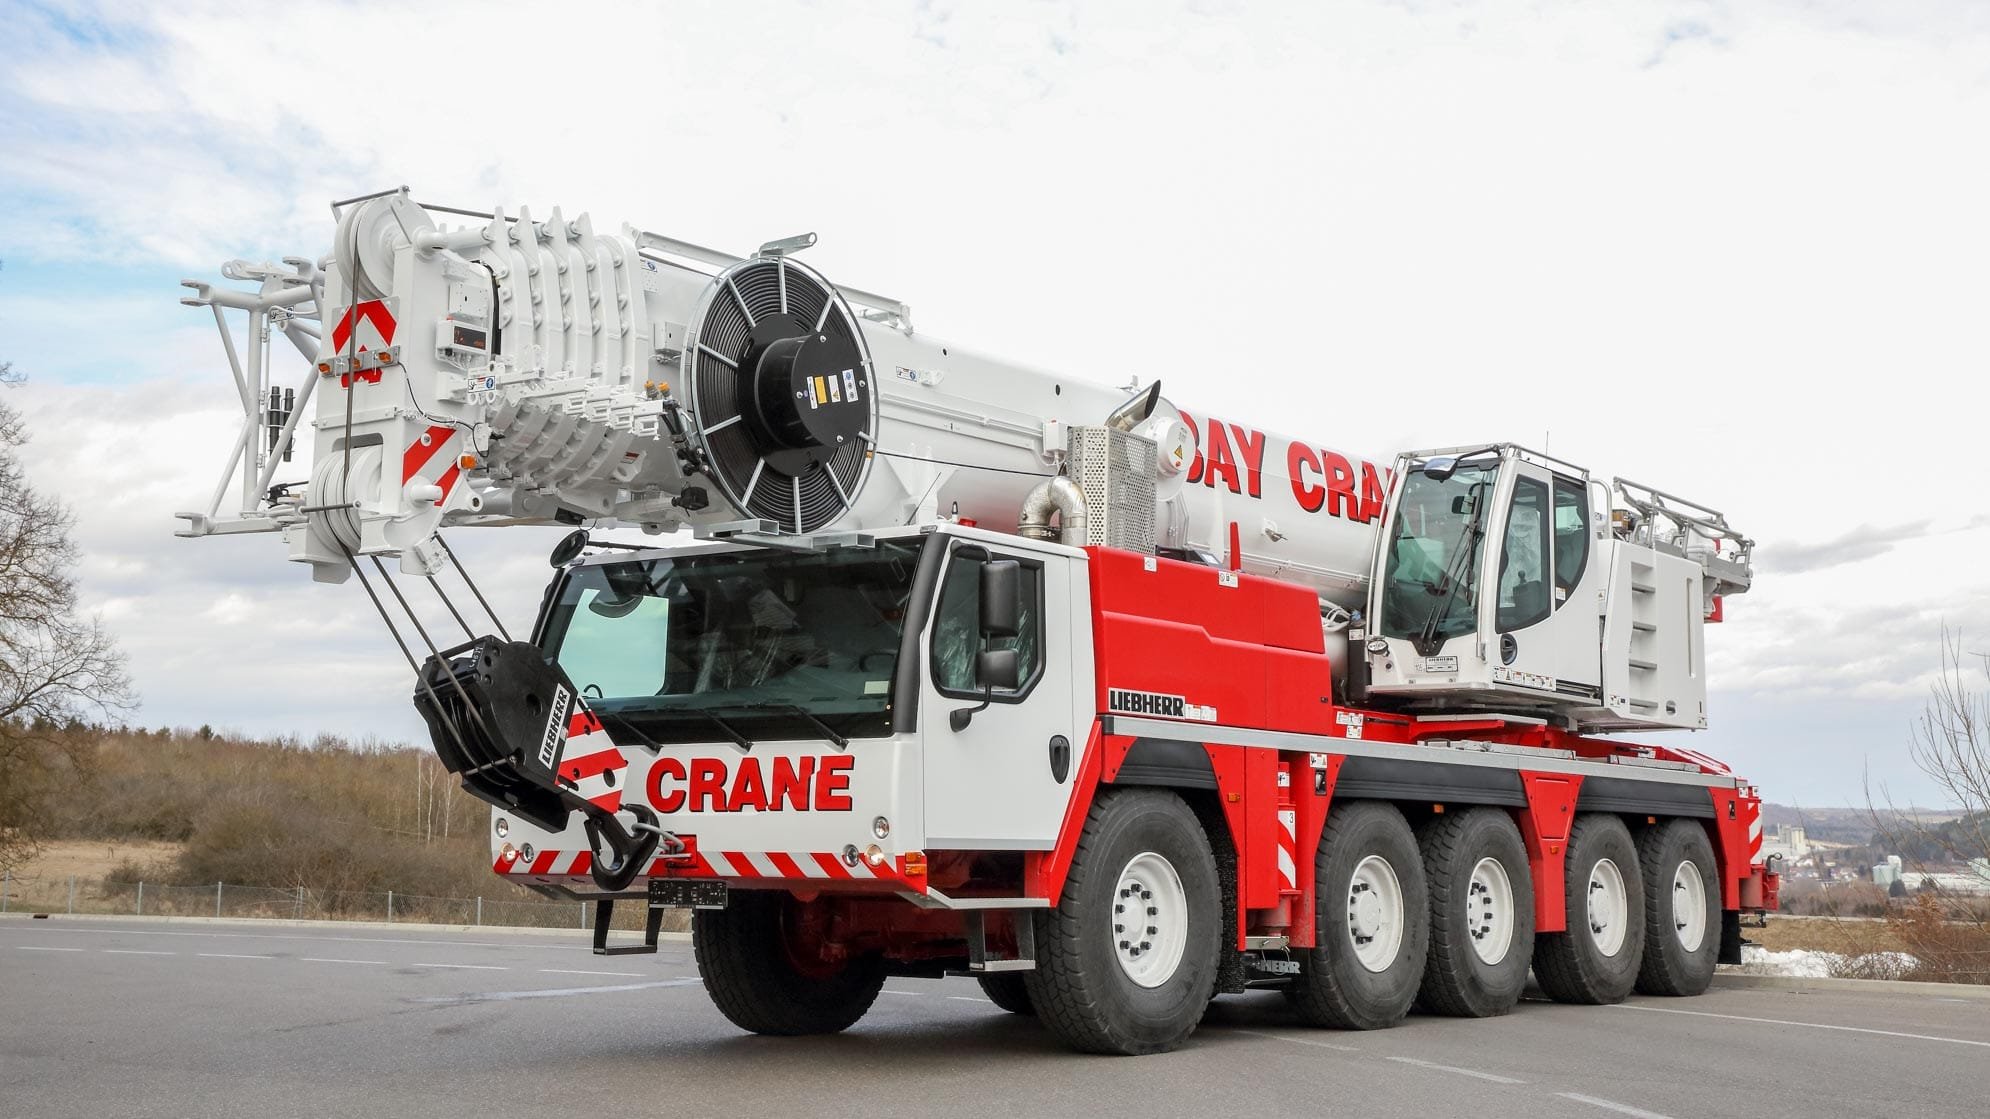 LTM 1130 all terrain crane with a hydraulic expandable